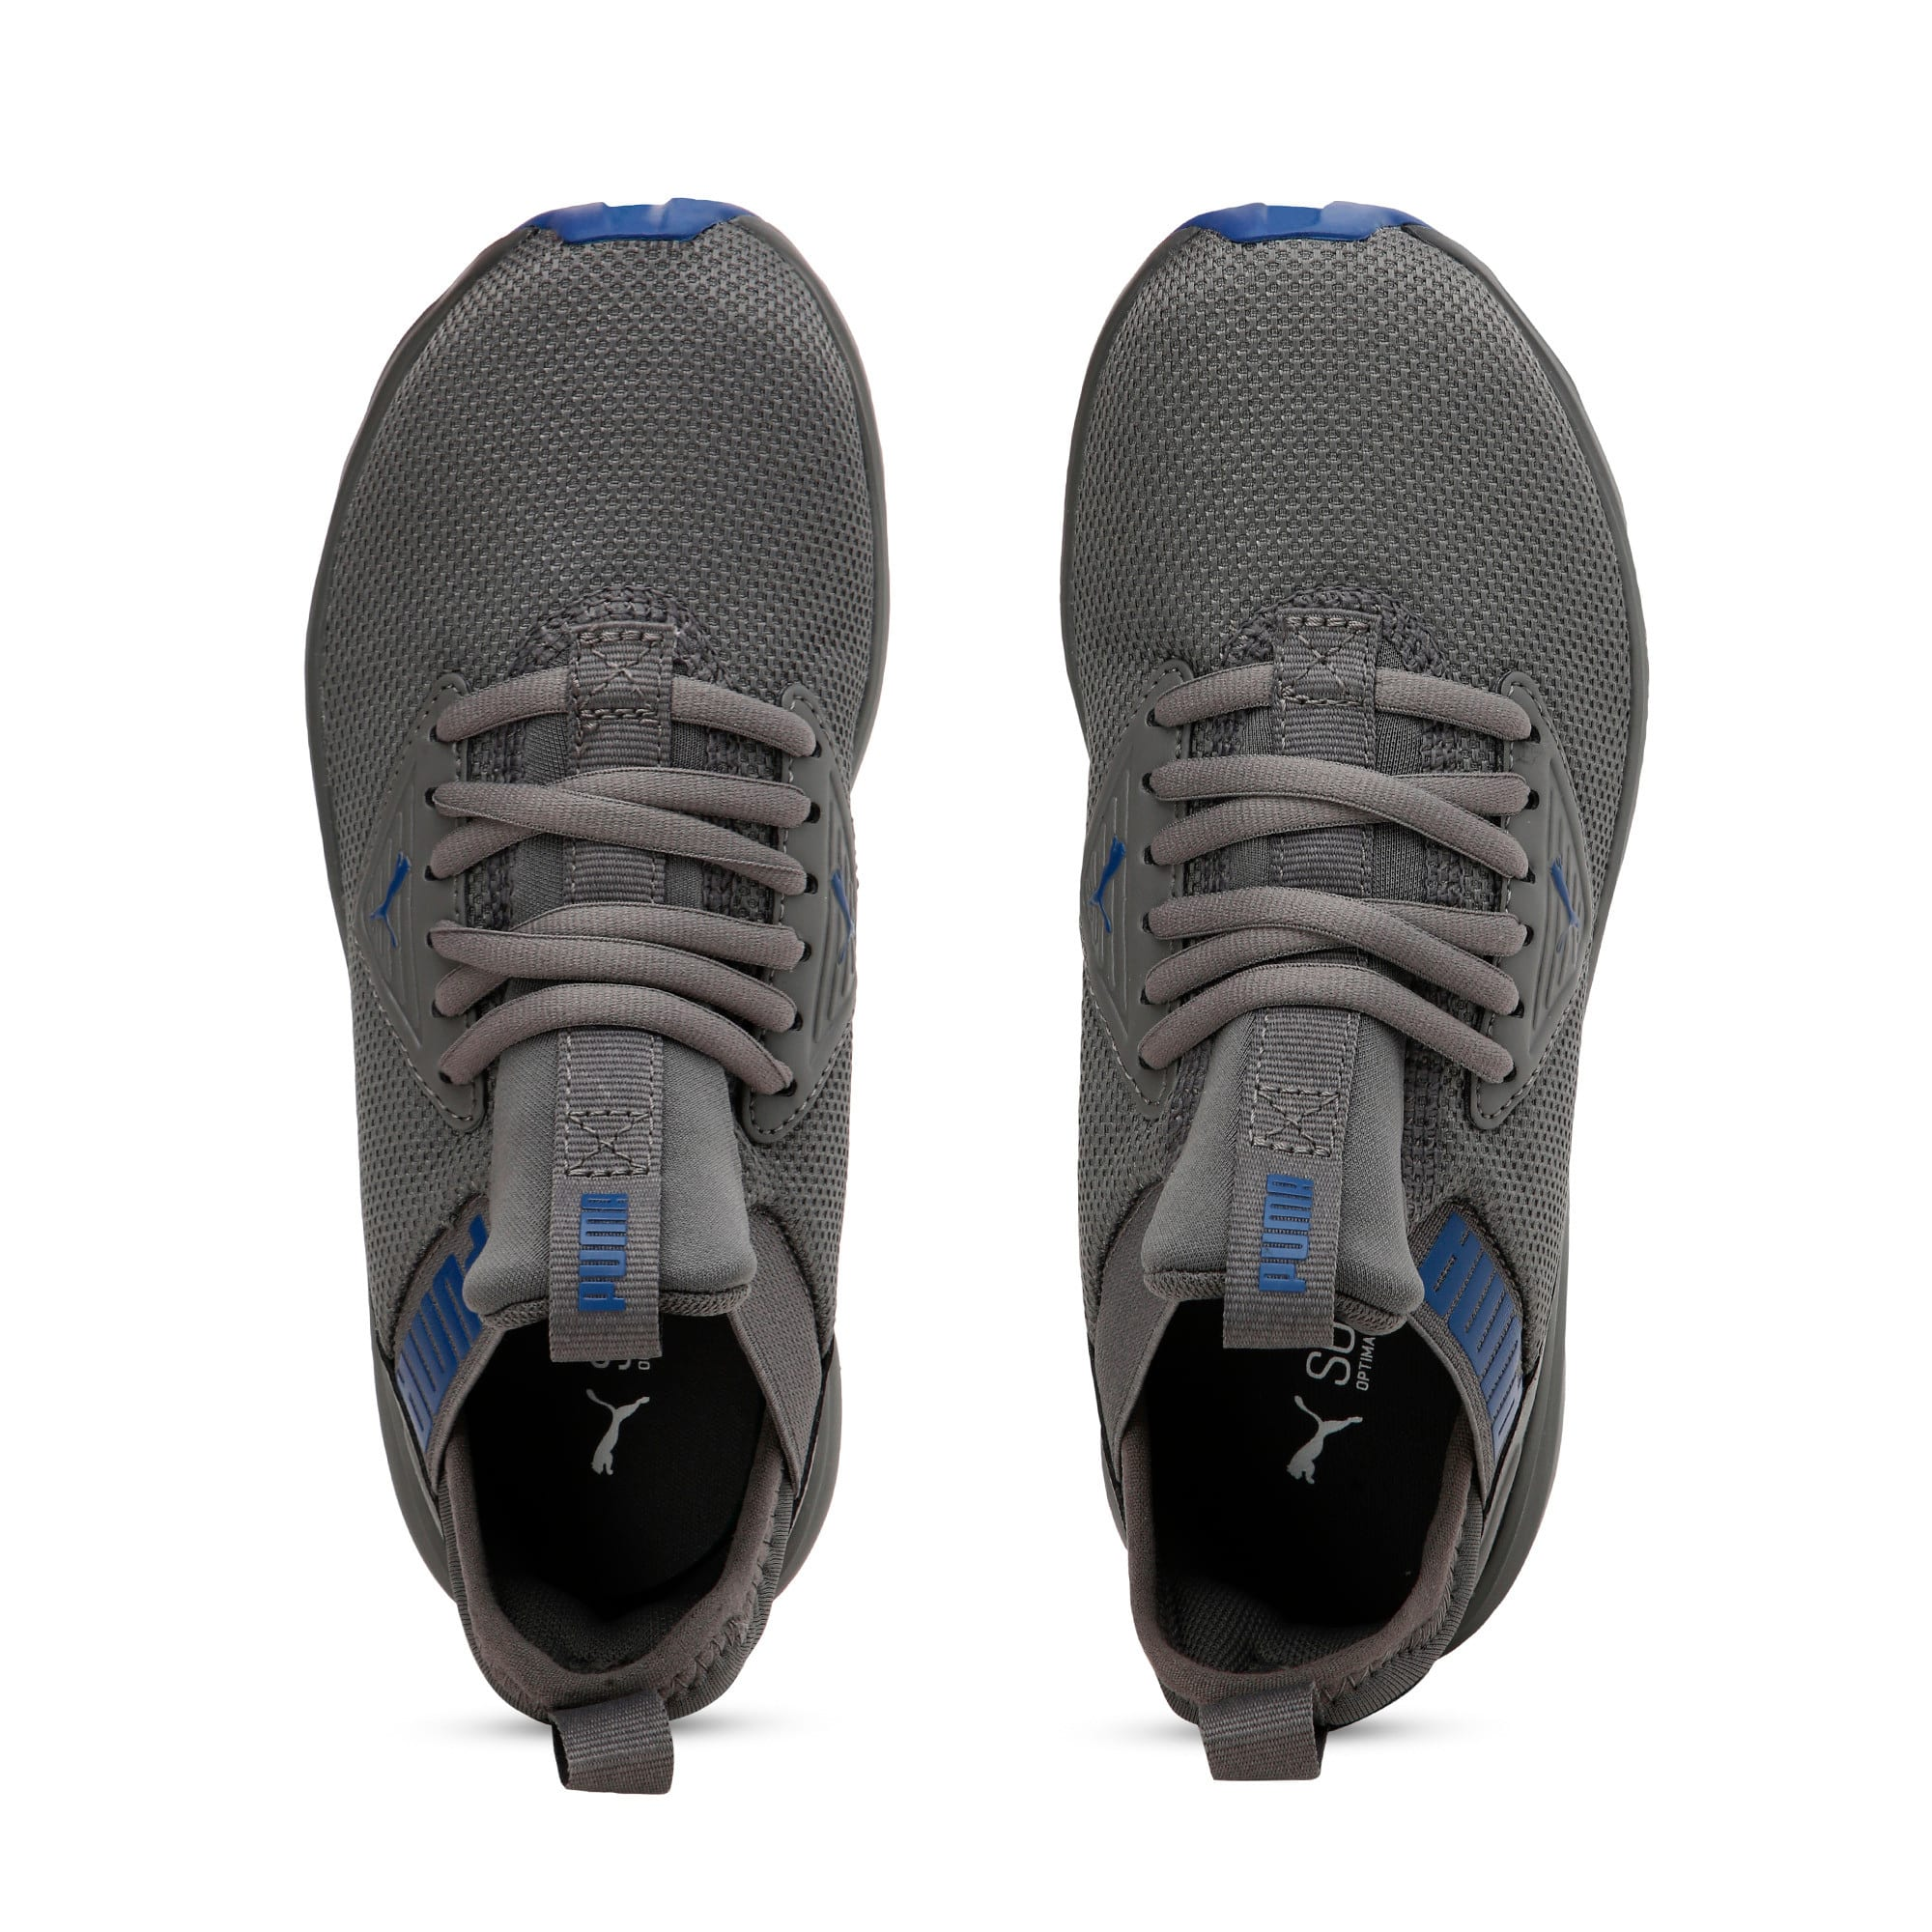 Thumbnail 6 of Enzo Beta Kids' Trainers, CASTLEROCK-Galaxy Blue, medium-IND